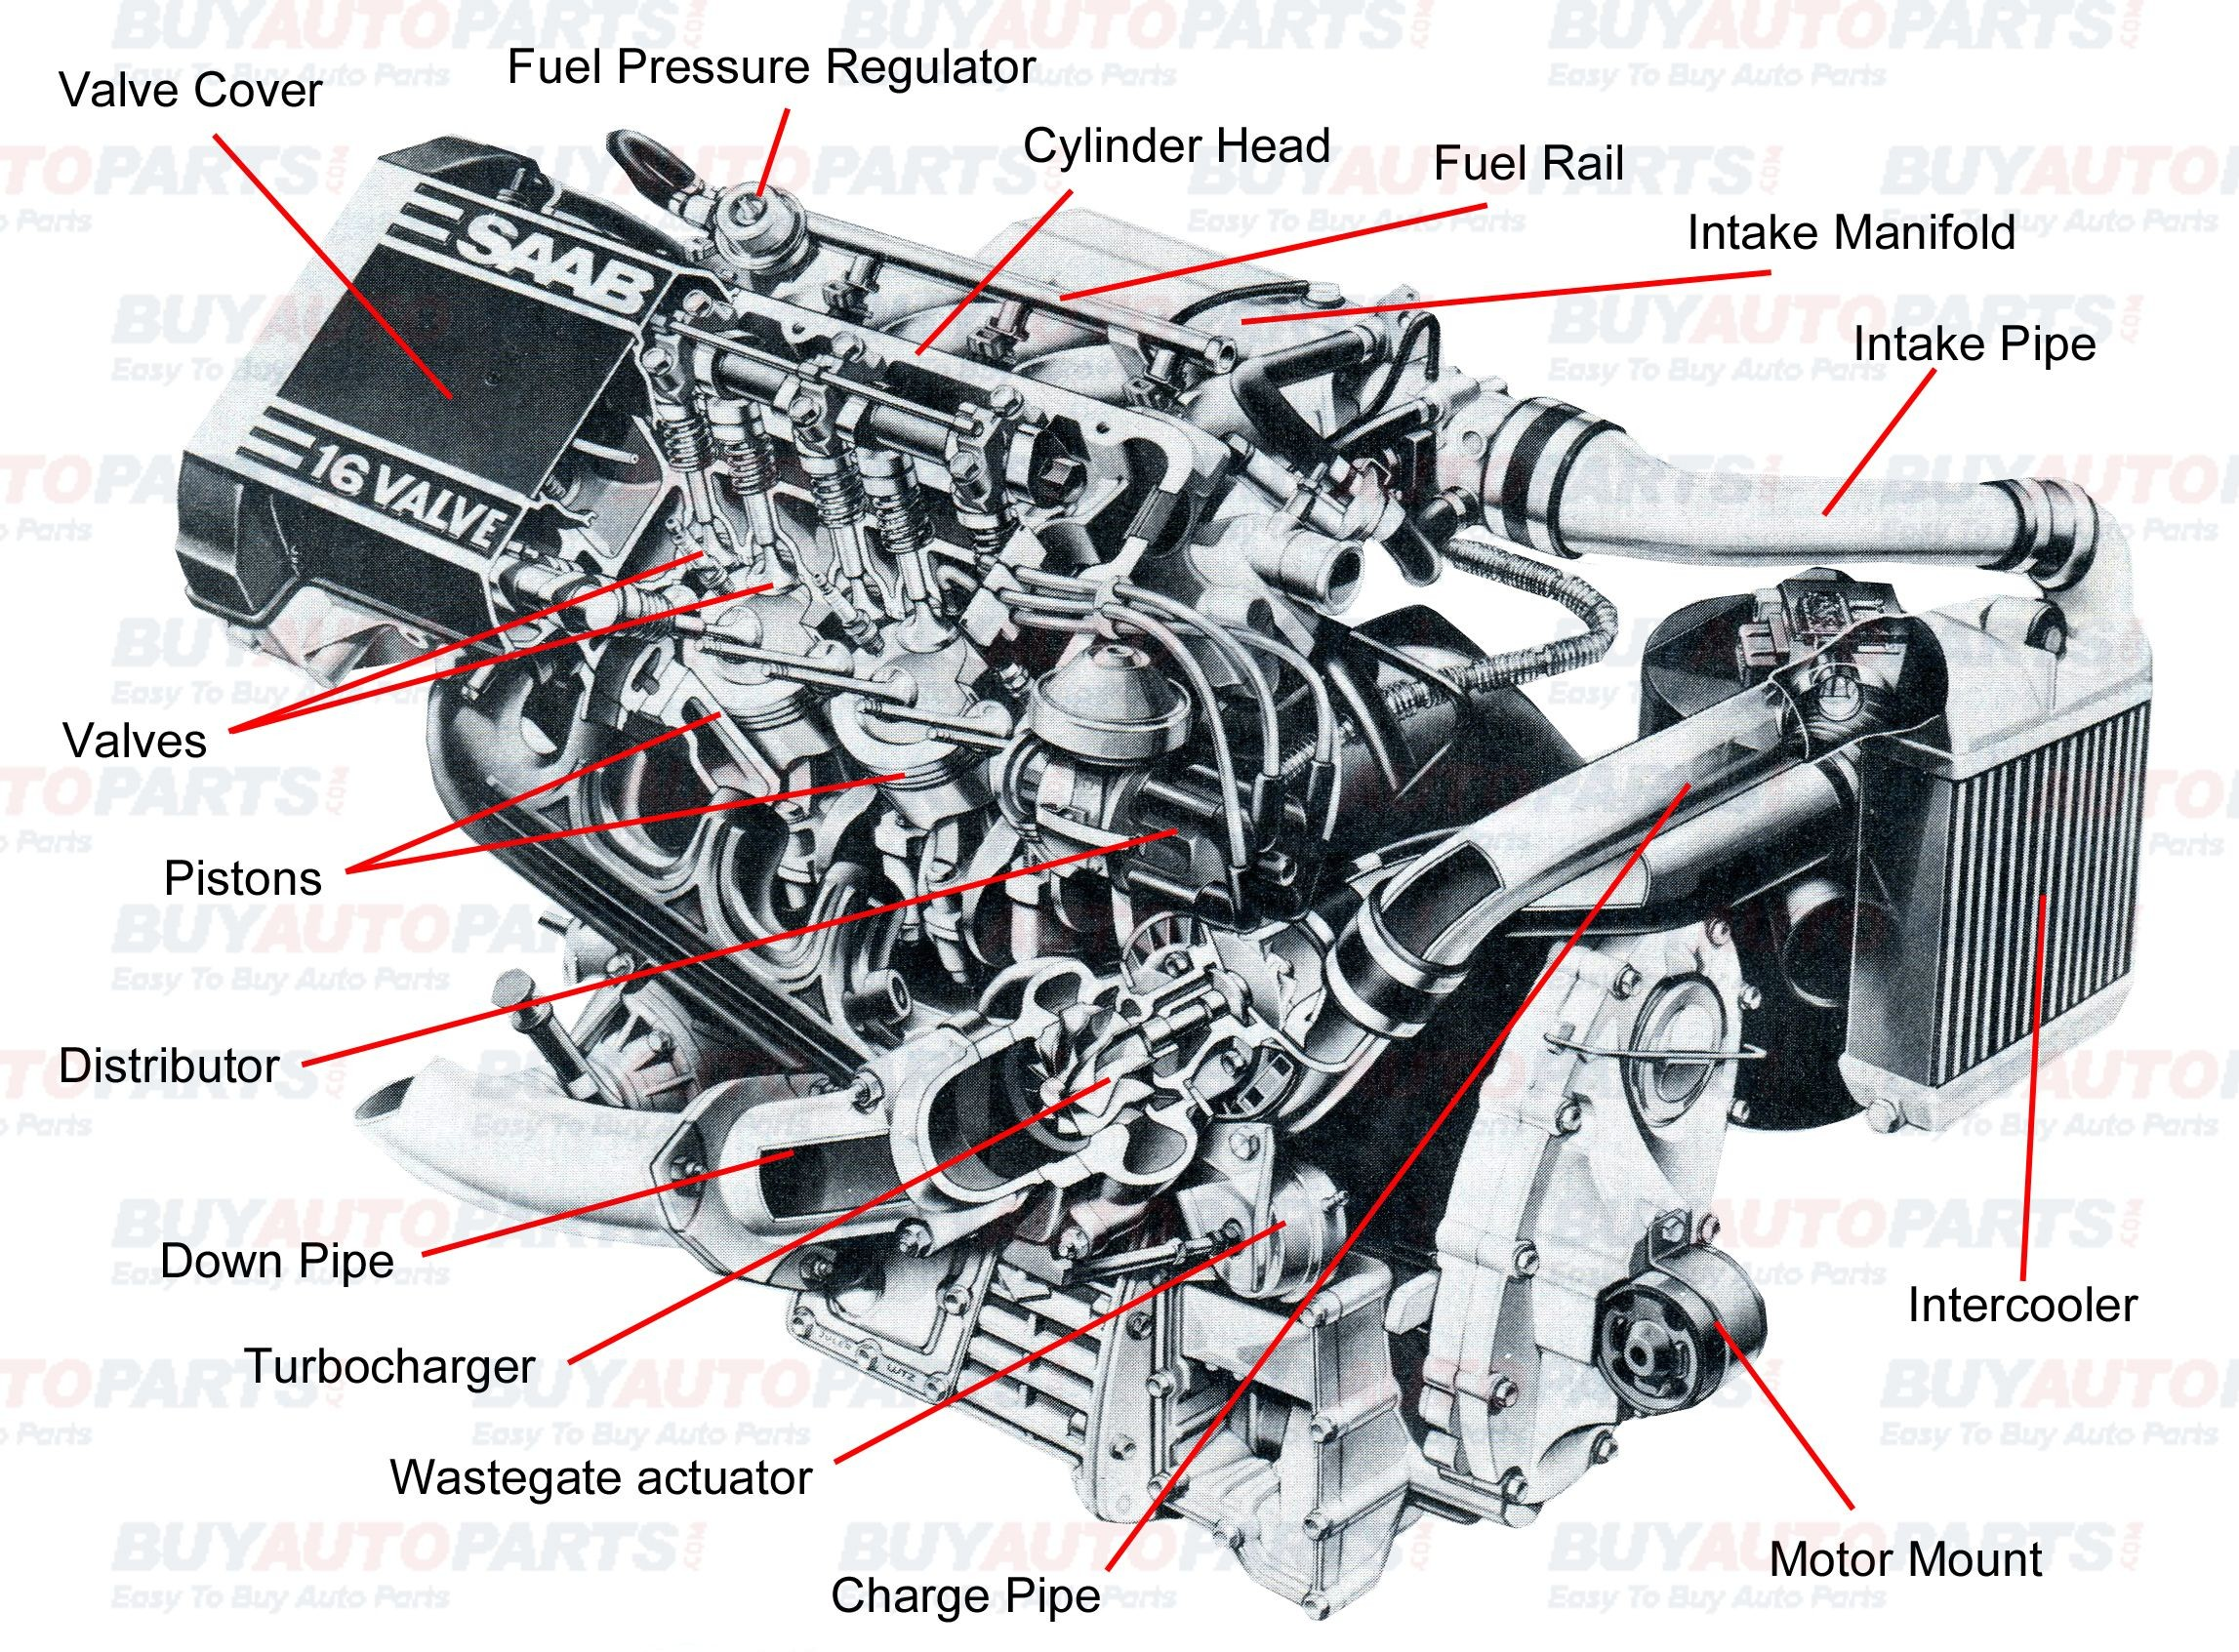 Car Engine Block Diagram All Internal Bustion Engines Have the Same Basic Ponents the Of Car Engine Block Diagram